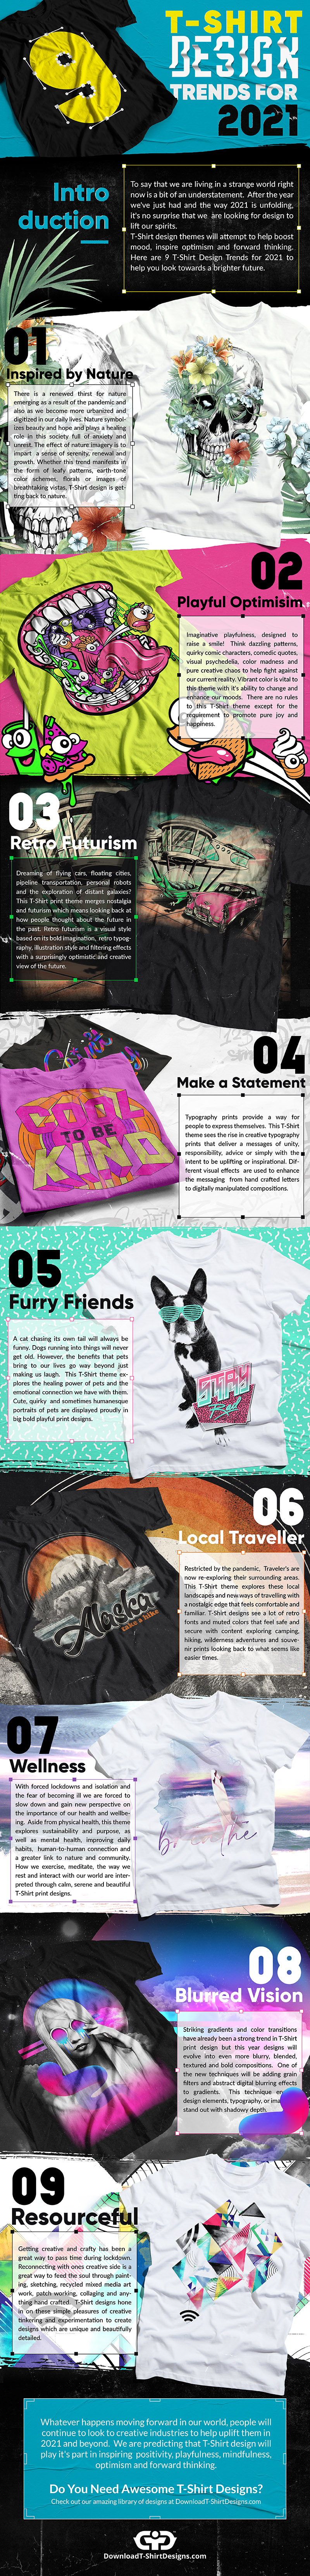 downloadt-shirtdesigns-9-t-shirt-design-trends-for-2021